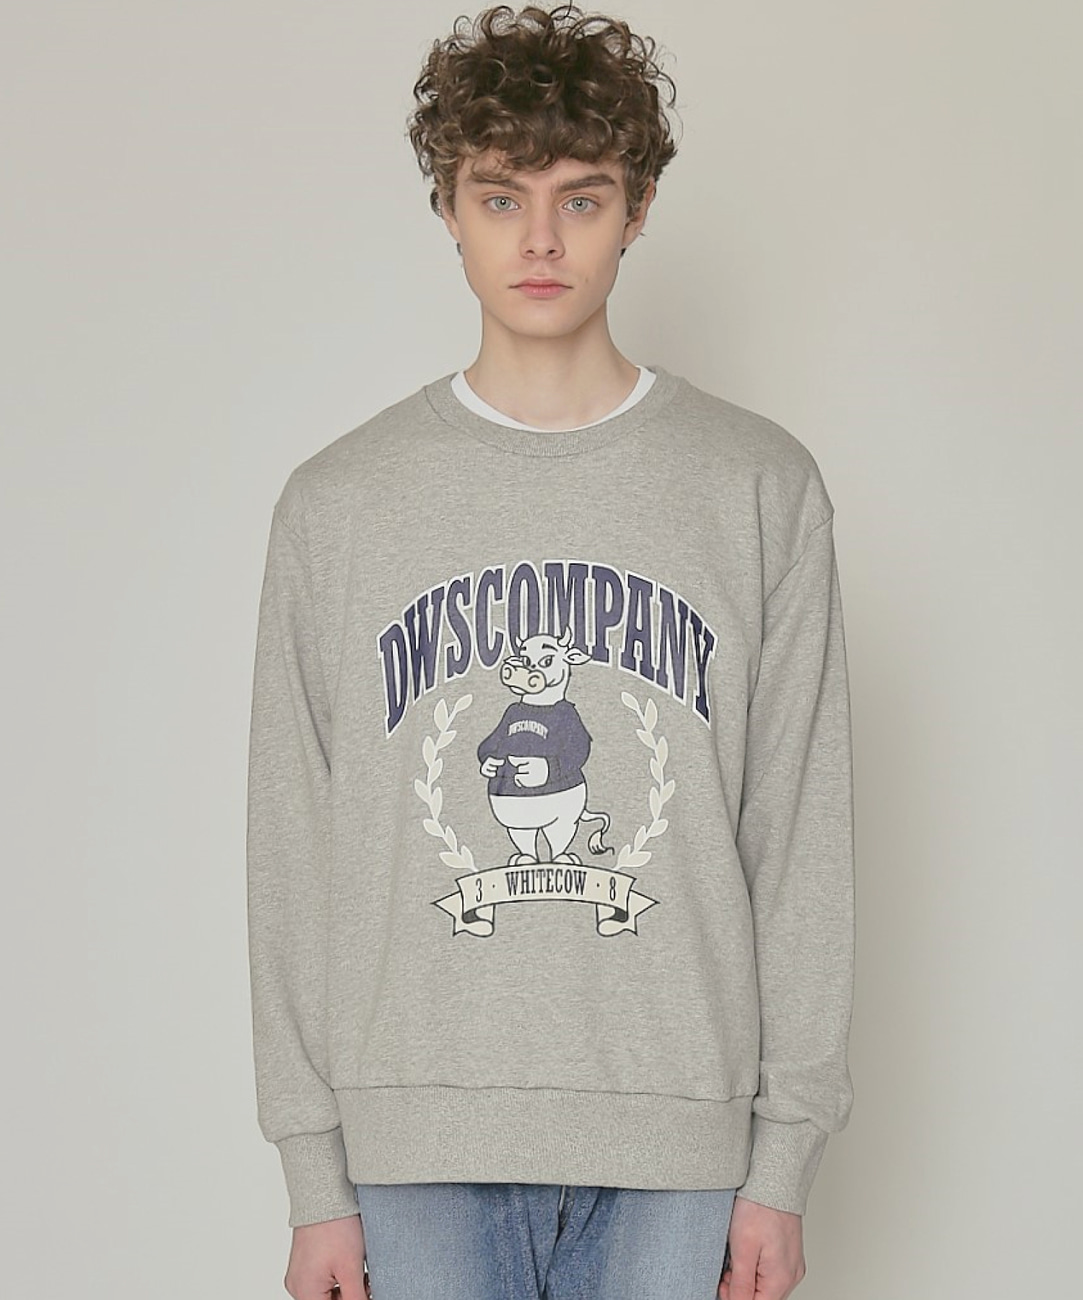 DWS 38 WHITE COW SWEATSHIRT(MELANGE GREY)